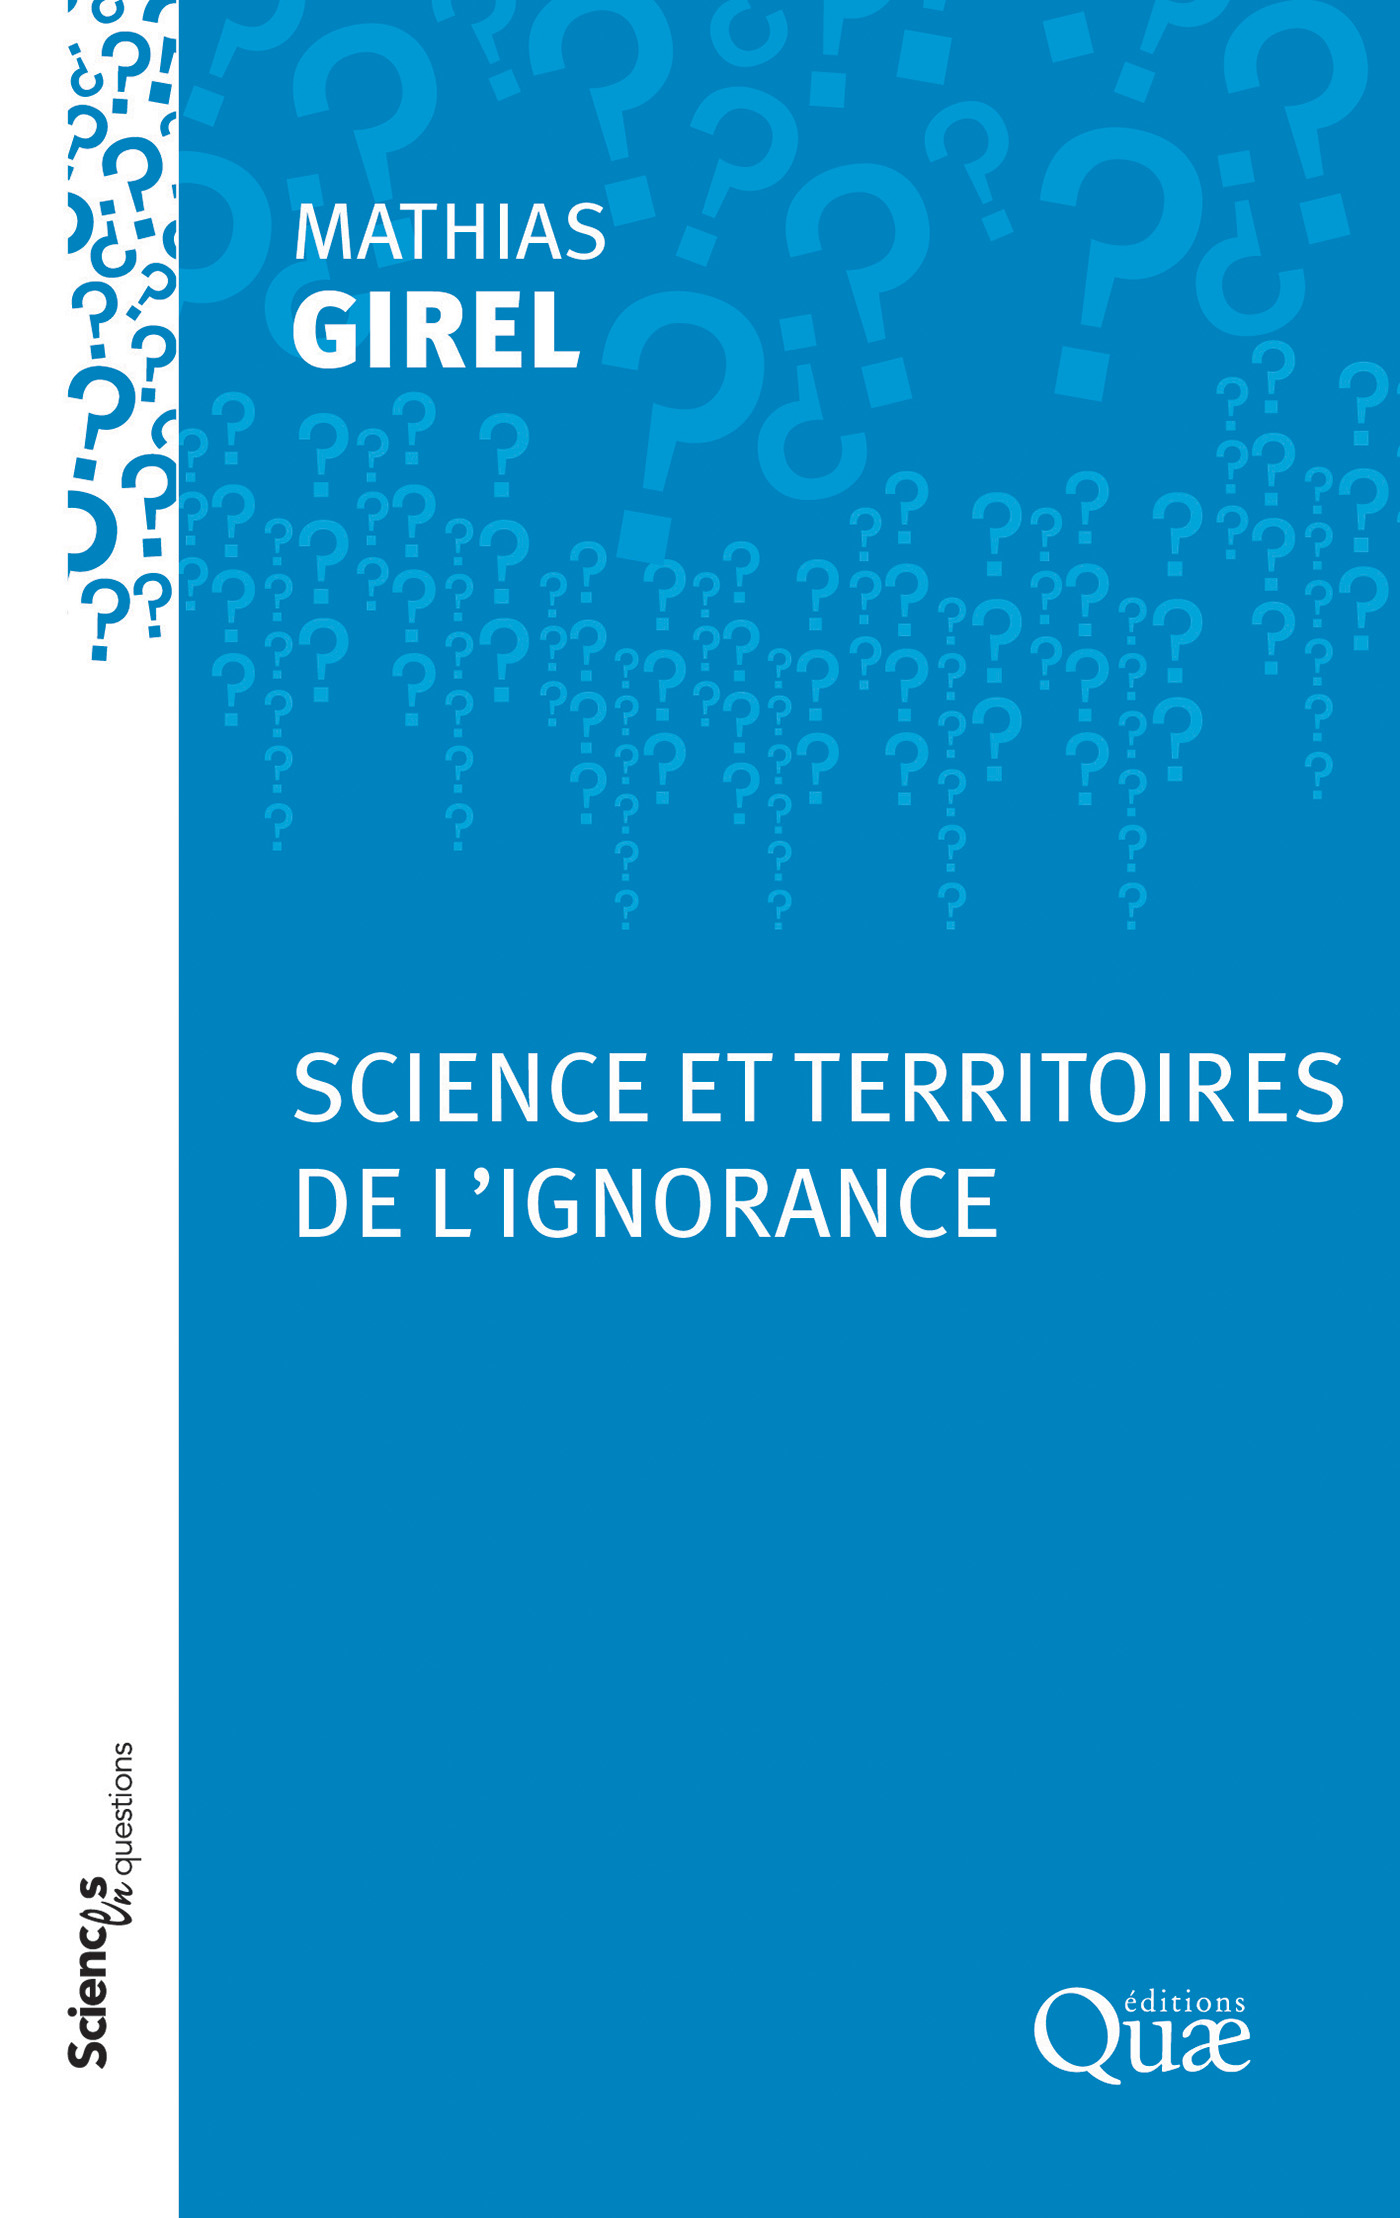 Science et territoires de l'ignorance